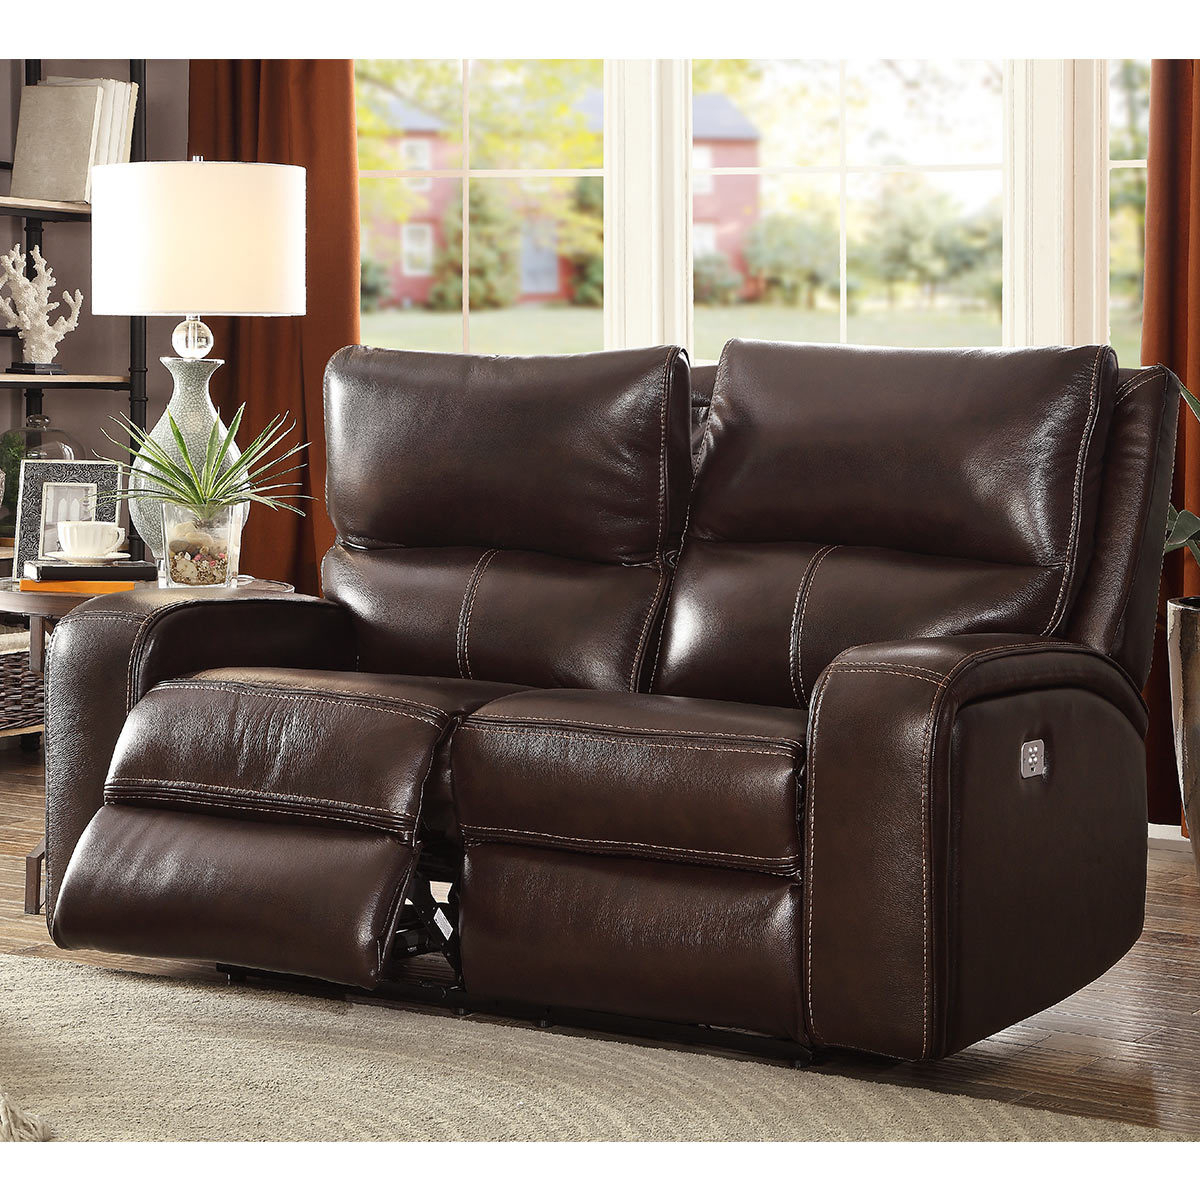 Well Known Contempo Power Reclining Sofas Regarding 2 Seat Leather Reclining Sofa – Sofa Design Ideas (View 14 of 20)